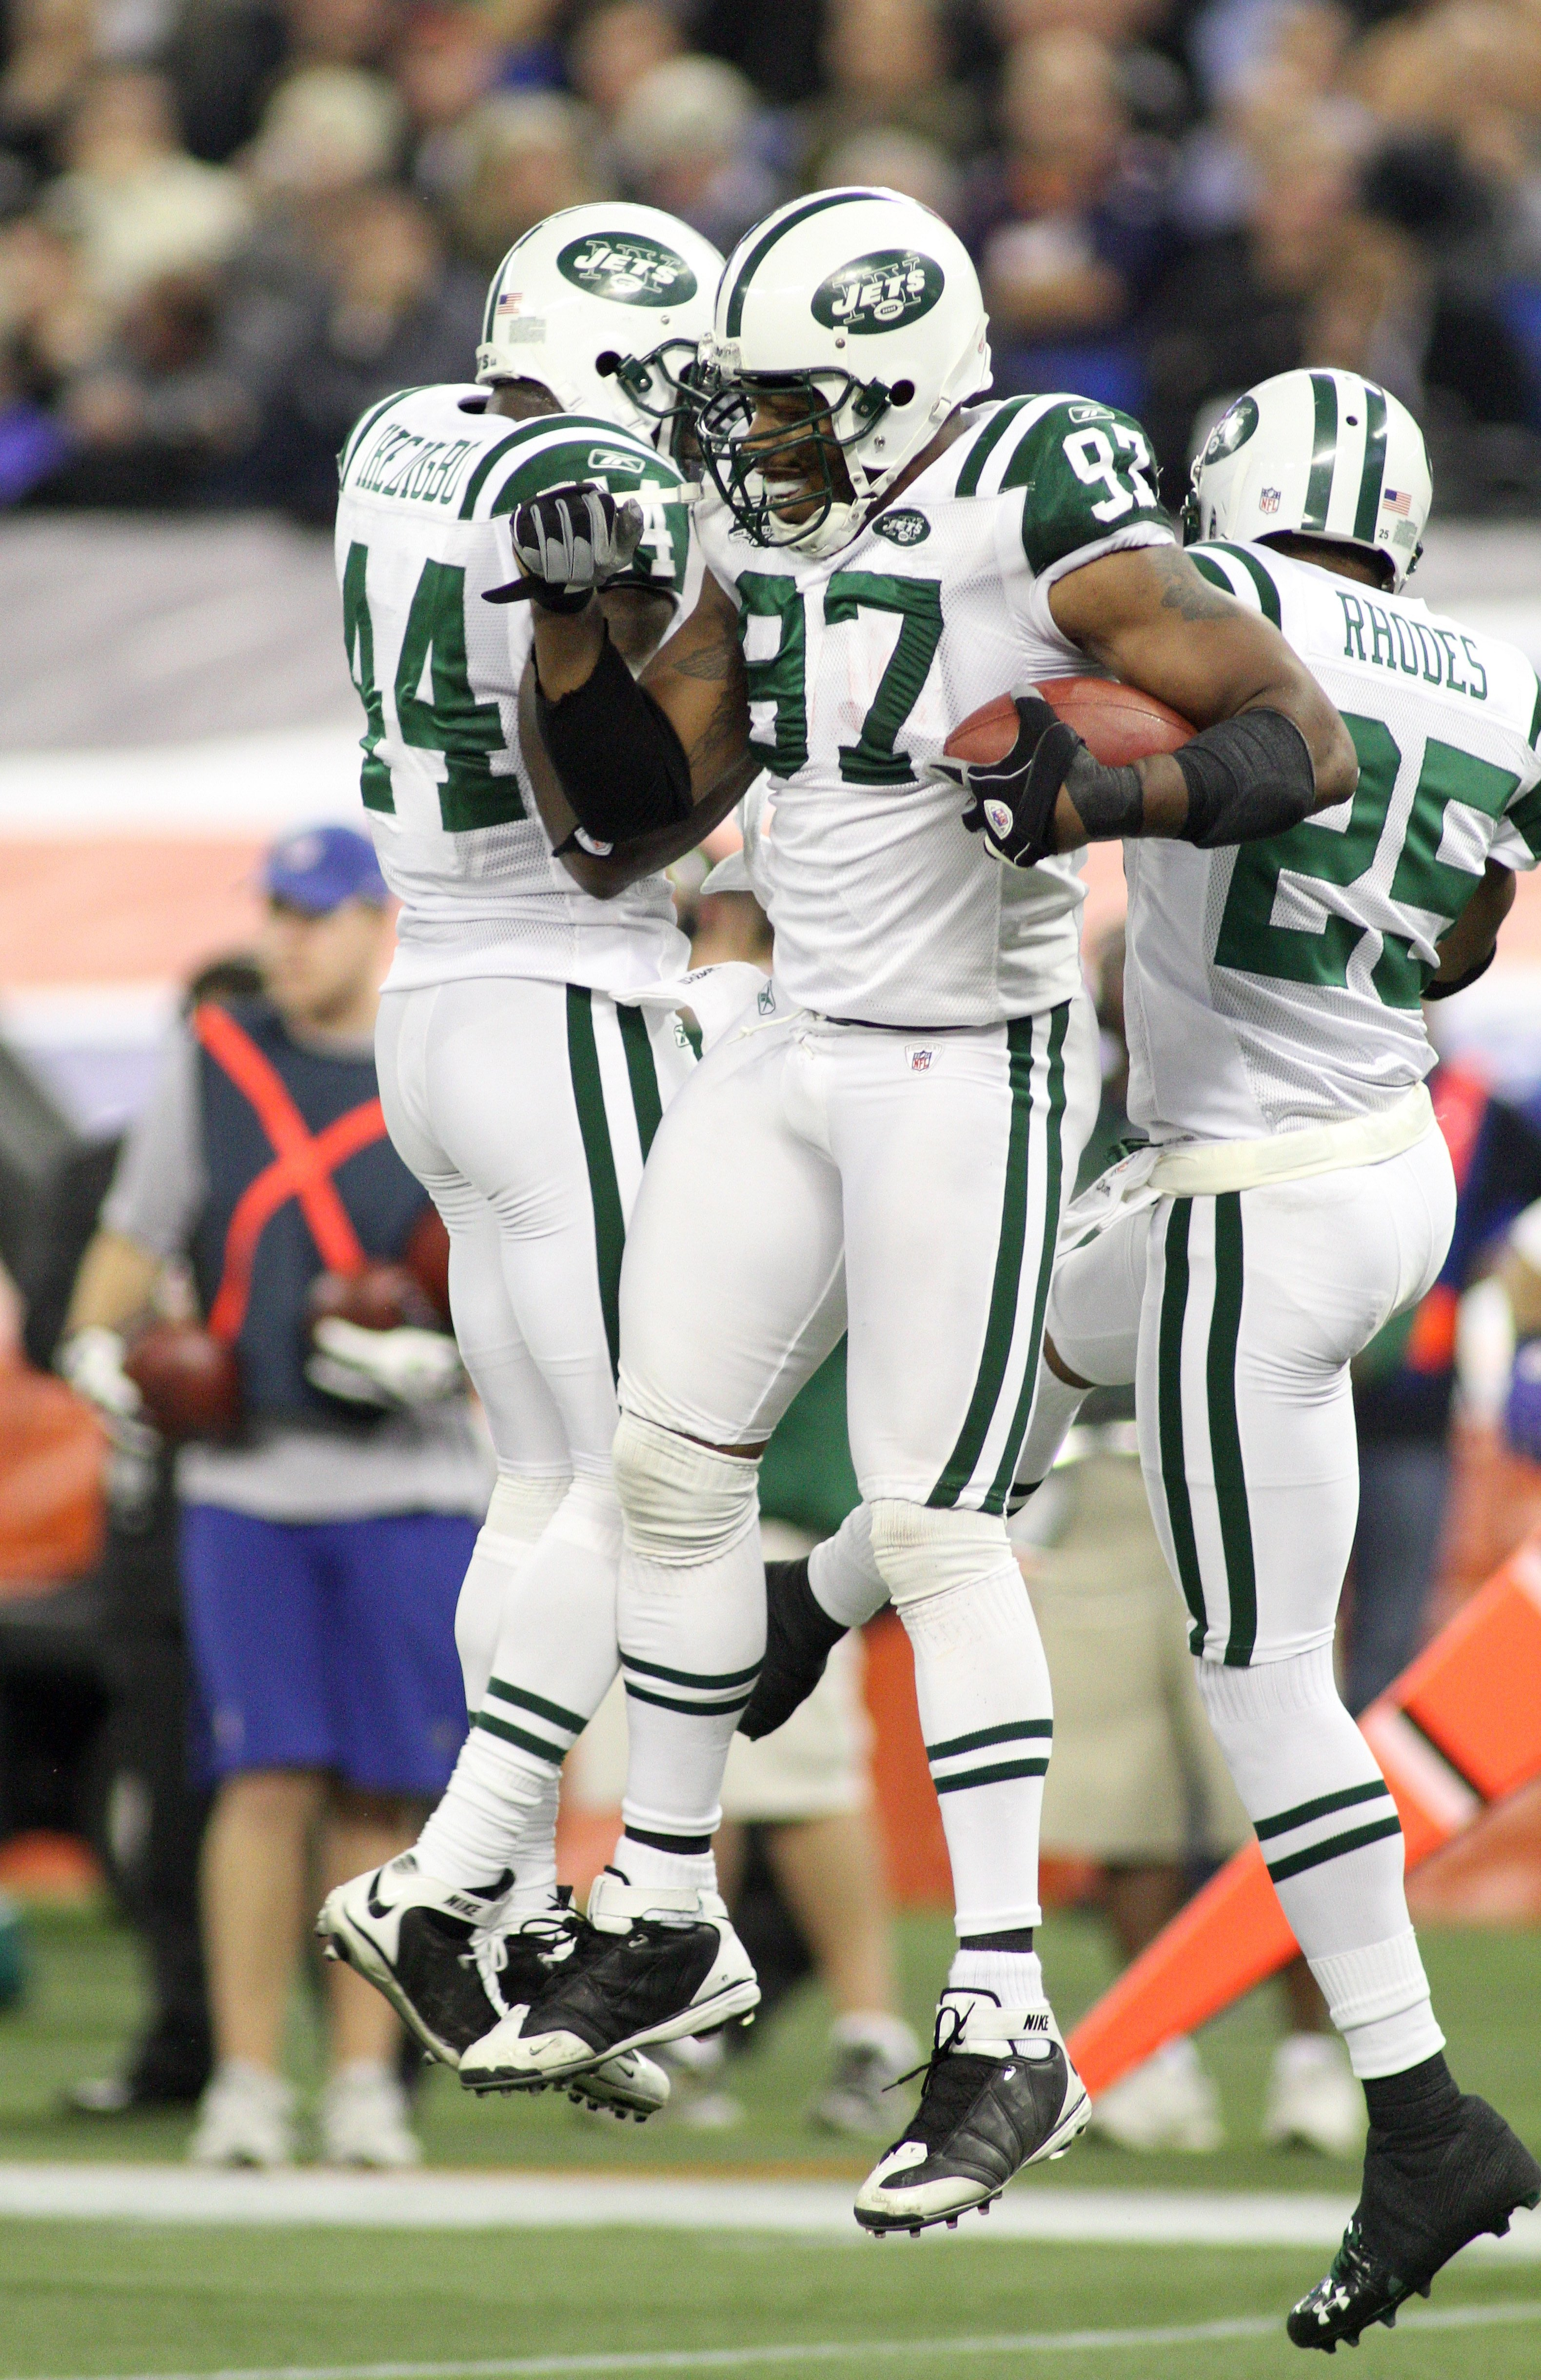 TORONTO - DECEMBER 3:  (L-R) James Ihedigbo #44, Calvin Pace #97 and Kerry Rhodes #25 of the New York Jets celebrate after a defensive play during their NFL game against the Buffalo Bills on December 3, 2009  at Rogers Centre in Toronto, Ontario, Canada.